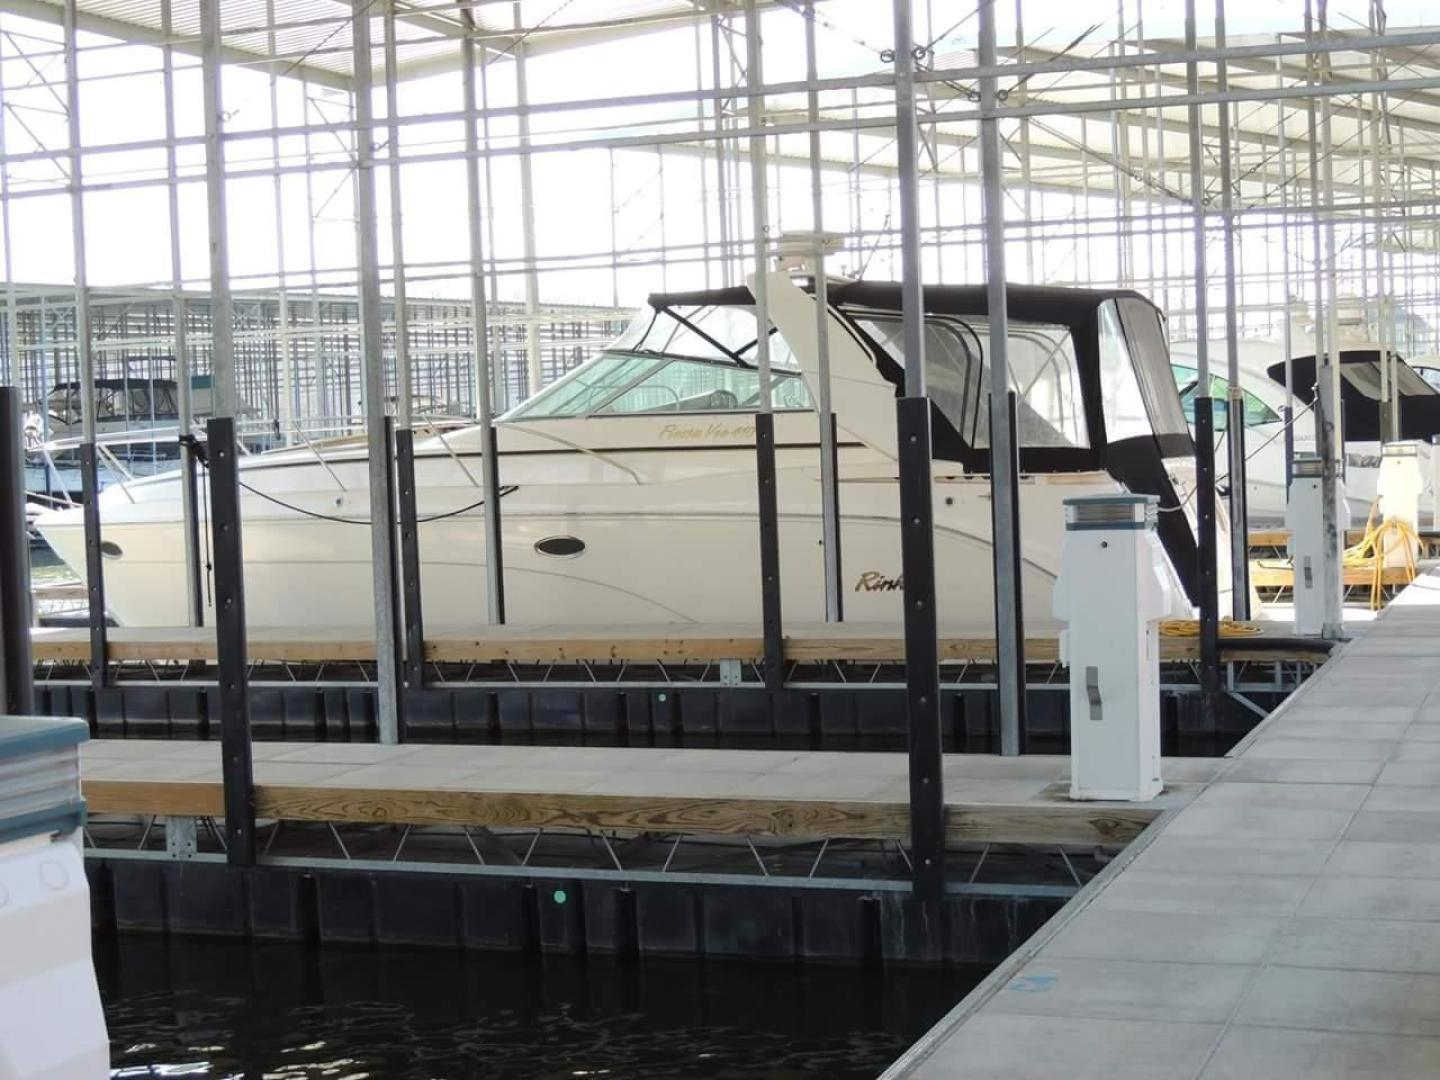 Rinker-410 Express Cruiser 2004 -Herrington Lake-Kentucky-United States-466199 | Thumbnail